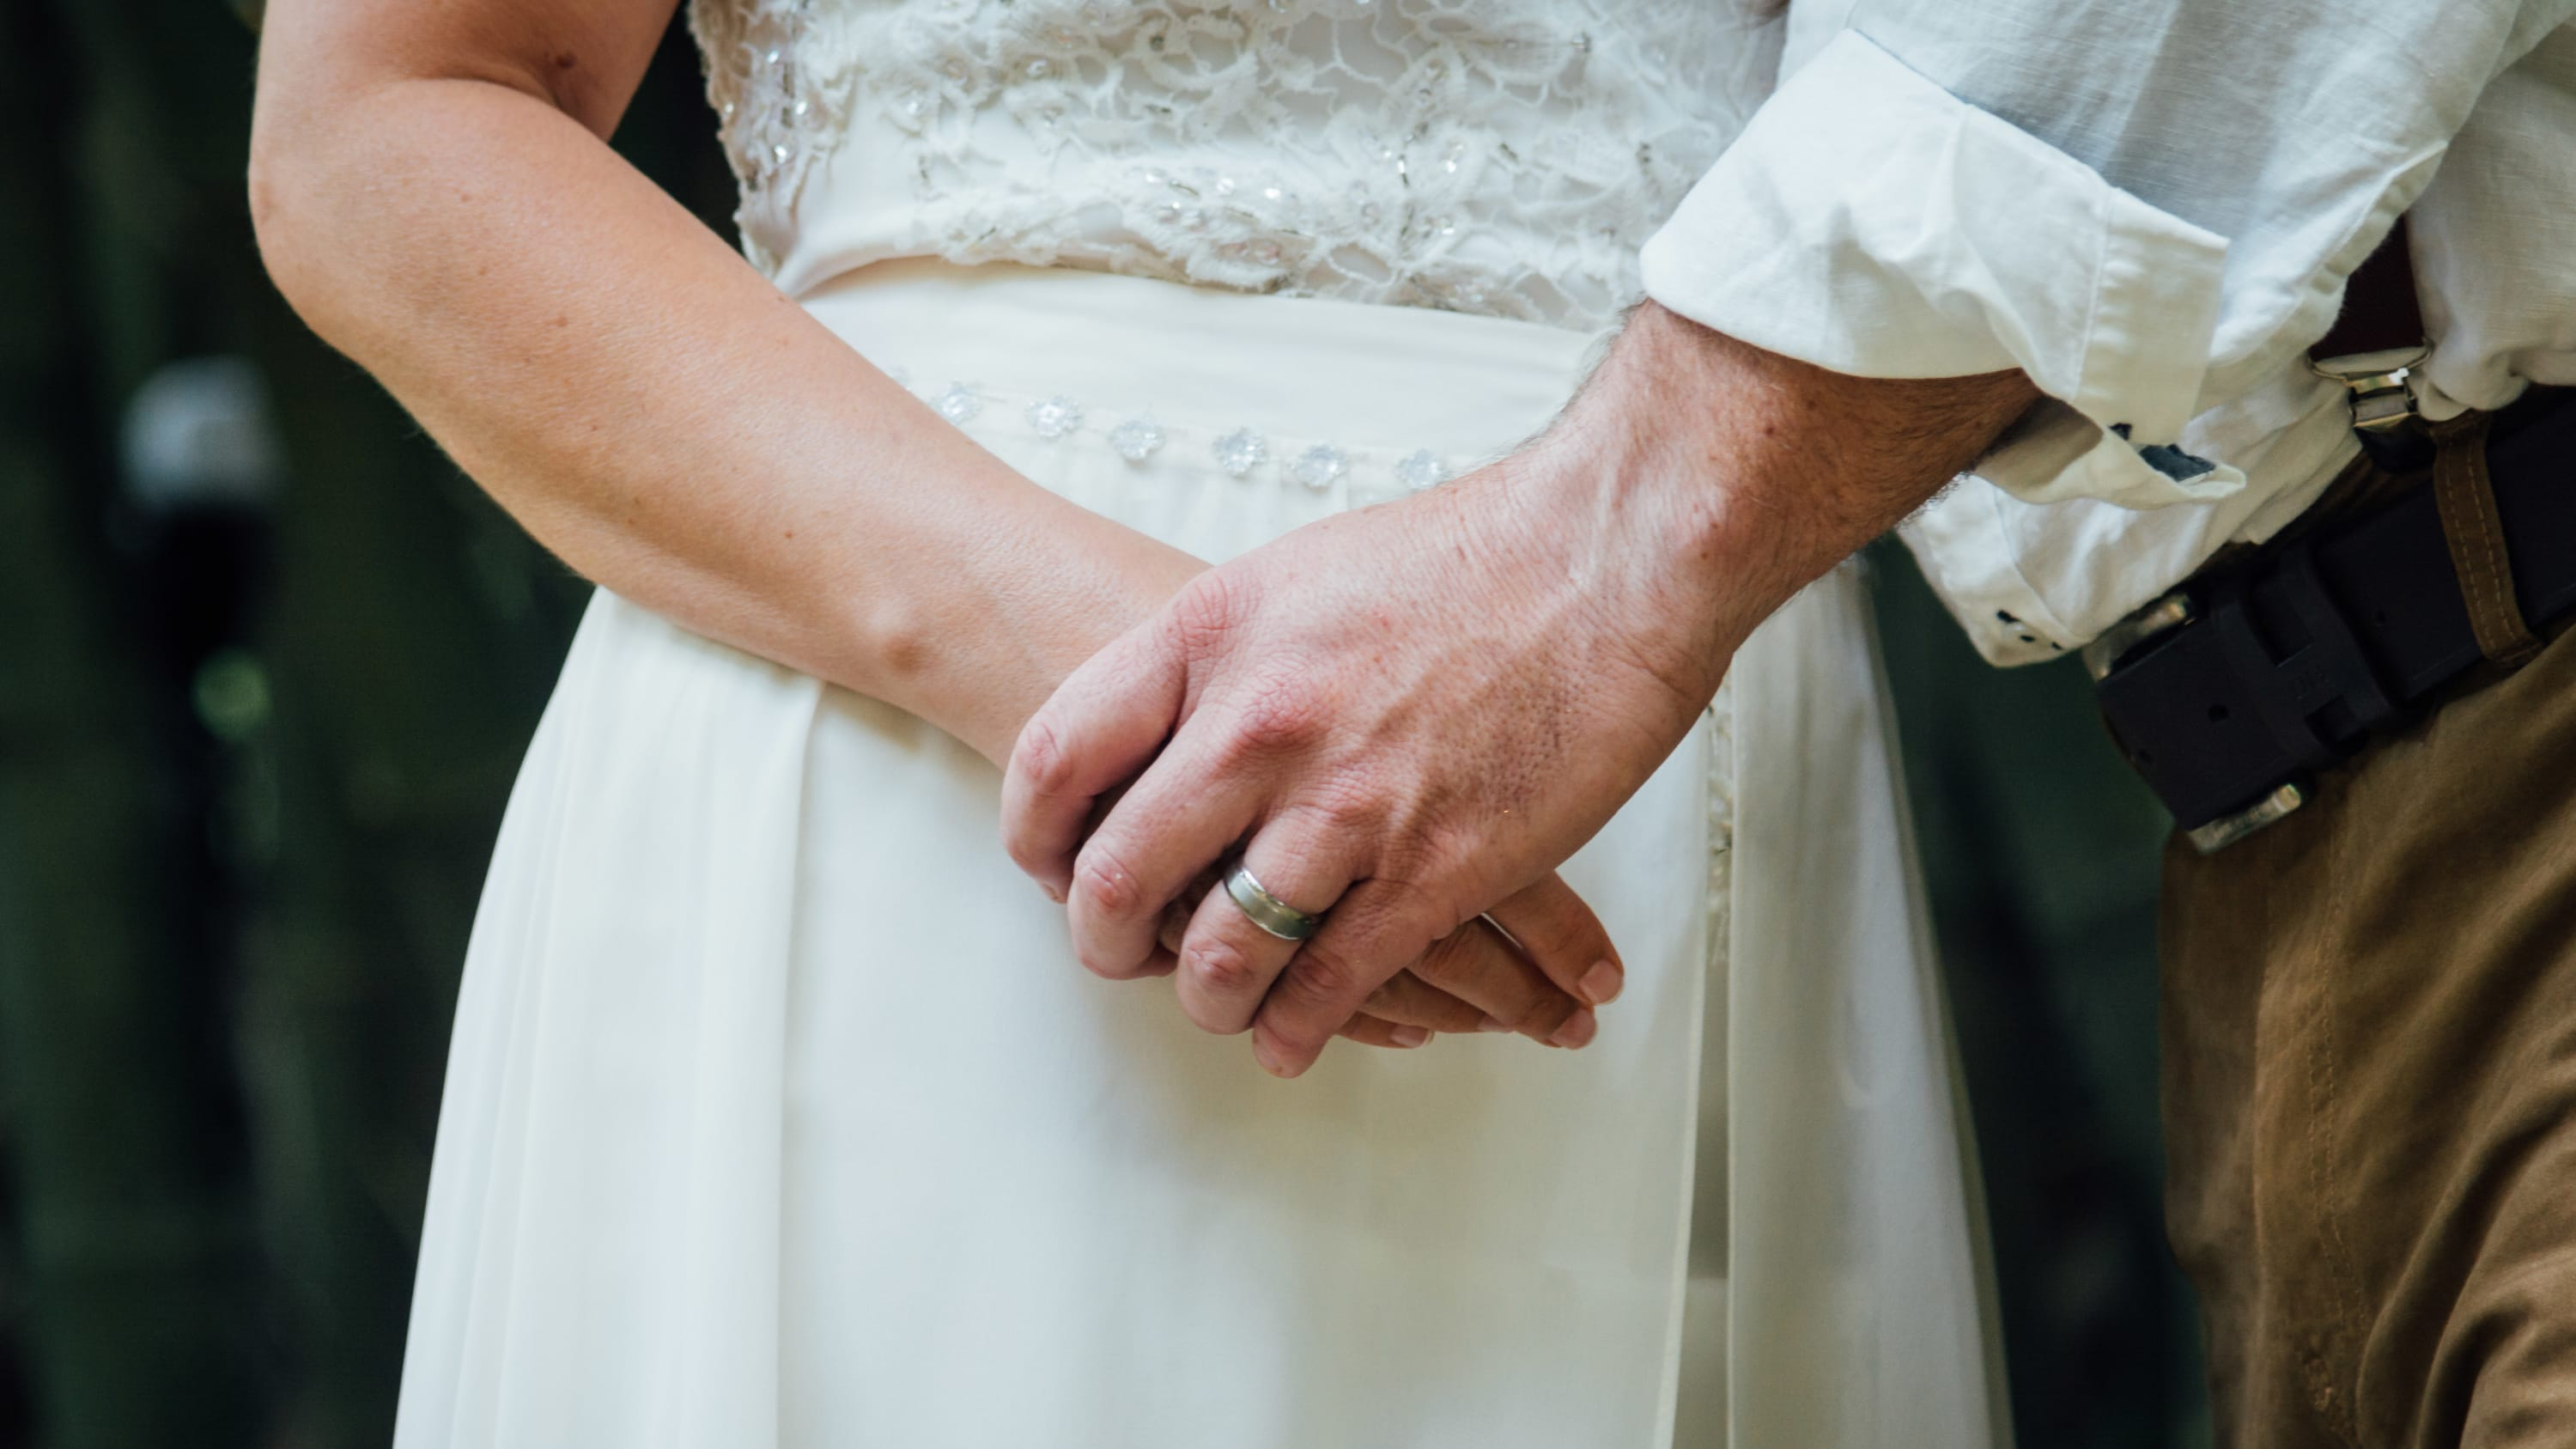 A newly married couple hold hands, closeup is on the hands.